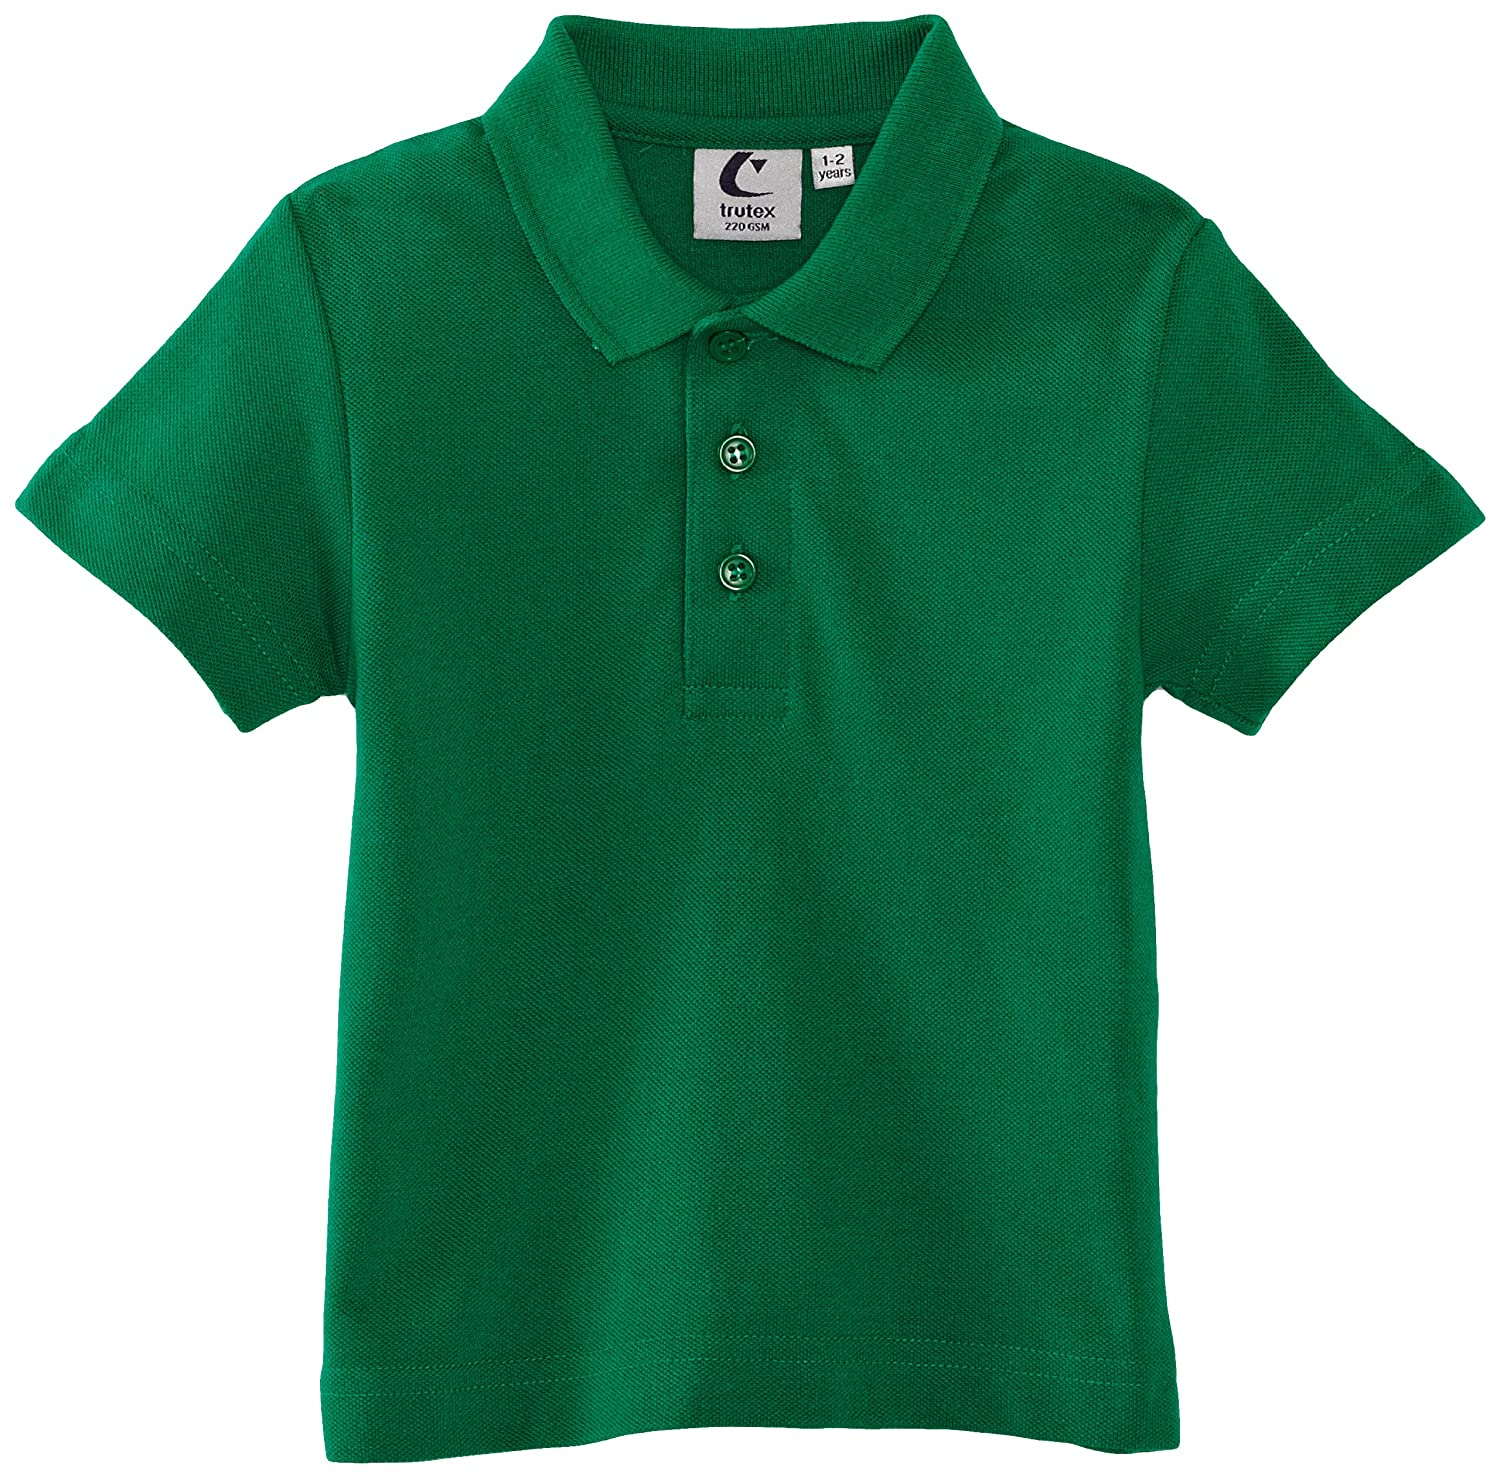 Trutex Limited - Polo, Short sleeve unisex 8050